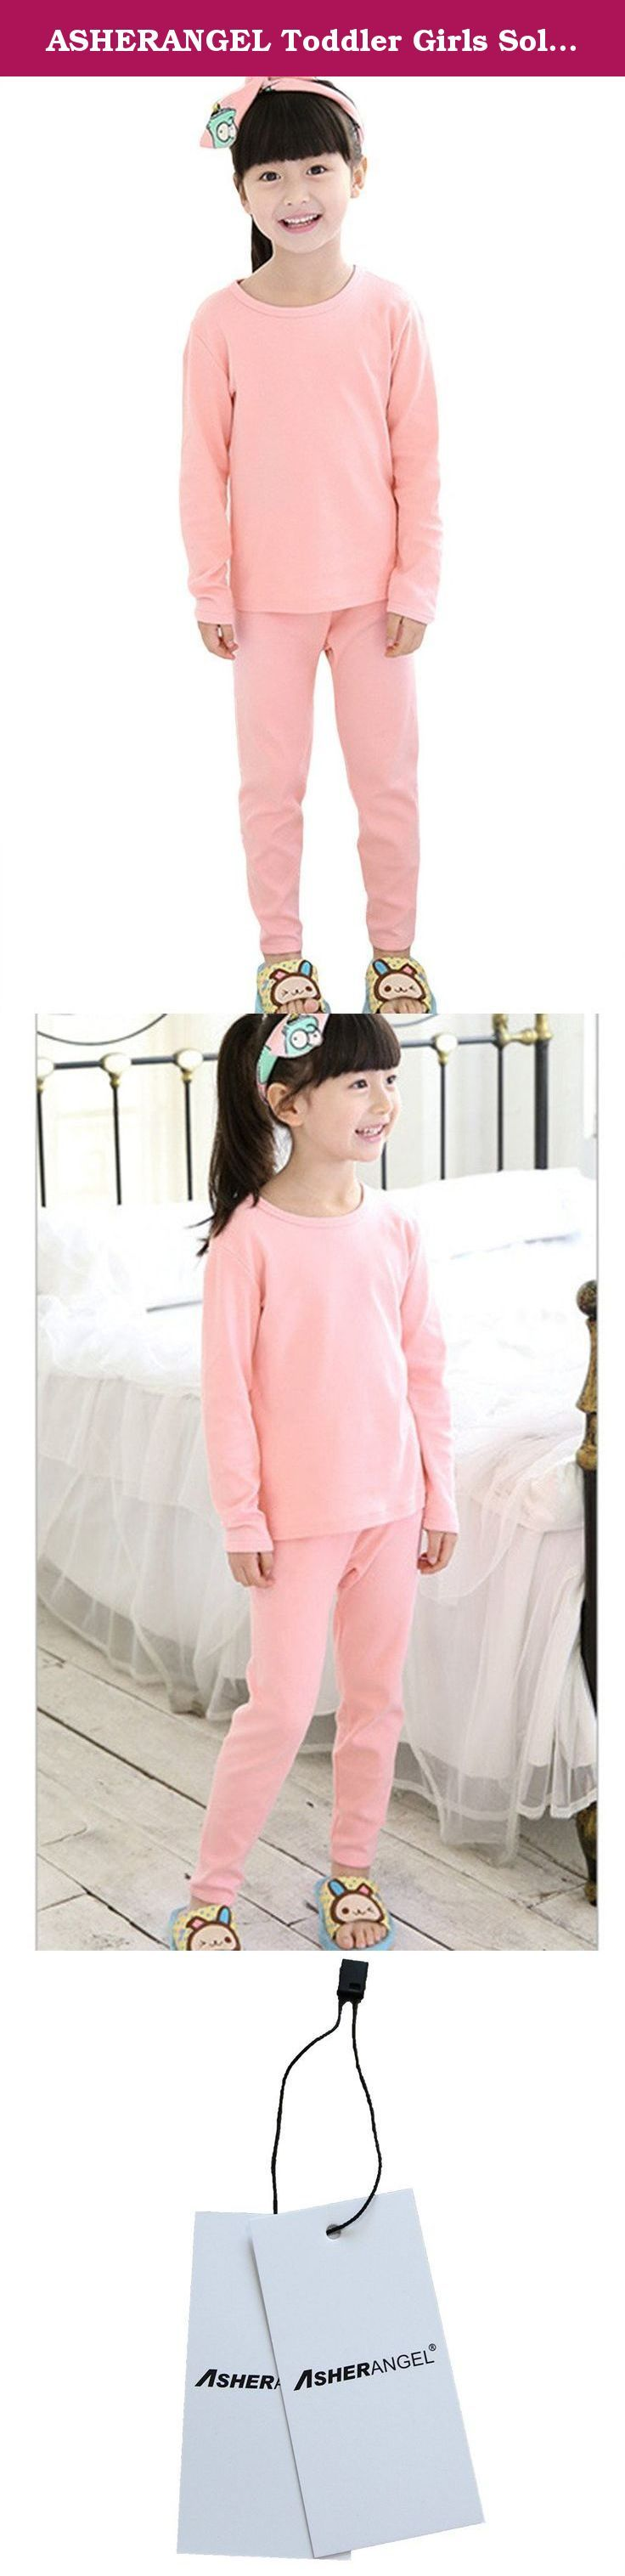 """ASHERANGEL Toddler Girls Solid Long Thermal Underwear Set 100% Cotton Pajamas Pink 3-4Y. Here is the Size Chart: Size 100cm=2-3Y: Bust:21.3"""", Top Length:14.6"""", Waist:16.6"""", Pant Length:19.4"""" Size 110cm=3-4Y: Bust:22.4"""", Top Length:15.8"""", Waist:17.4"""", Pant Length:22.2"""" Size 120cm=4-5Y: Bust:23.6"""", Top Length:17.0"""", Waist:18.2"""", Pant Length:24.4"""" Size 130cm=6-7Y: Bust:24.8"""", Top Length:18.2"""", Waist:19.0"""", Pant Length:27.6"""" Size 140cm=8-9Y: Bust:26.4"""", Top Length:19.8"""", Waist:19.8"""", Pant..."""